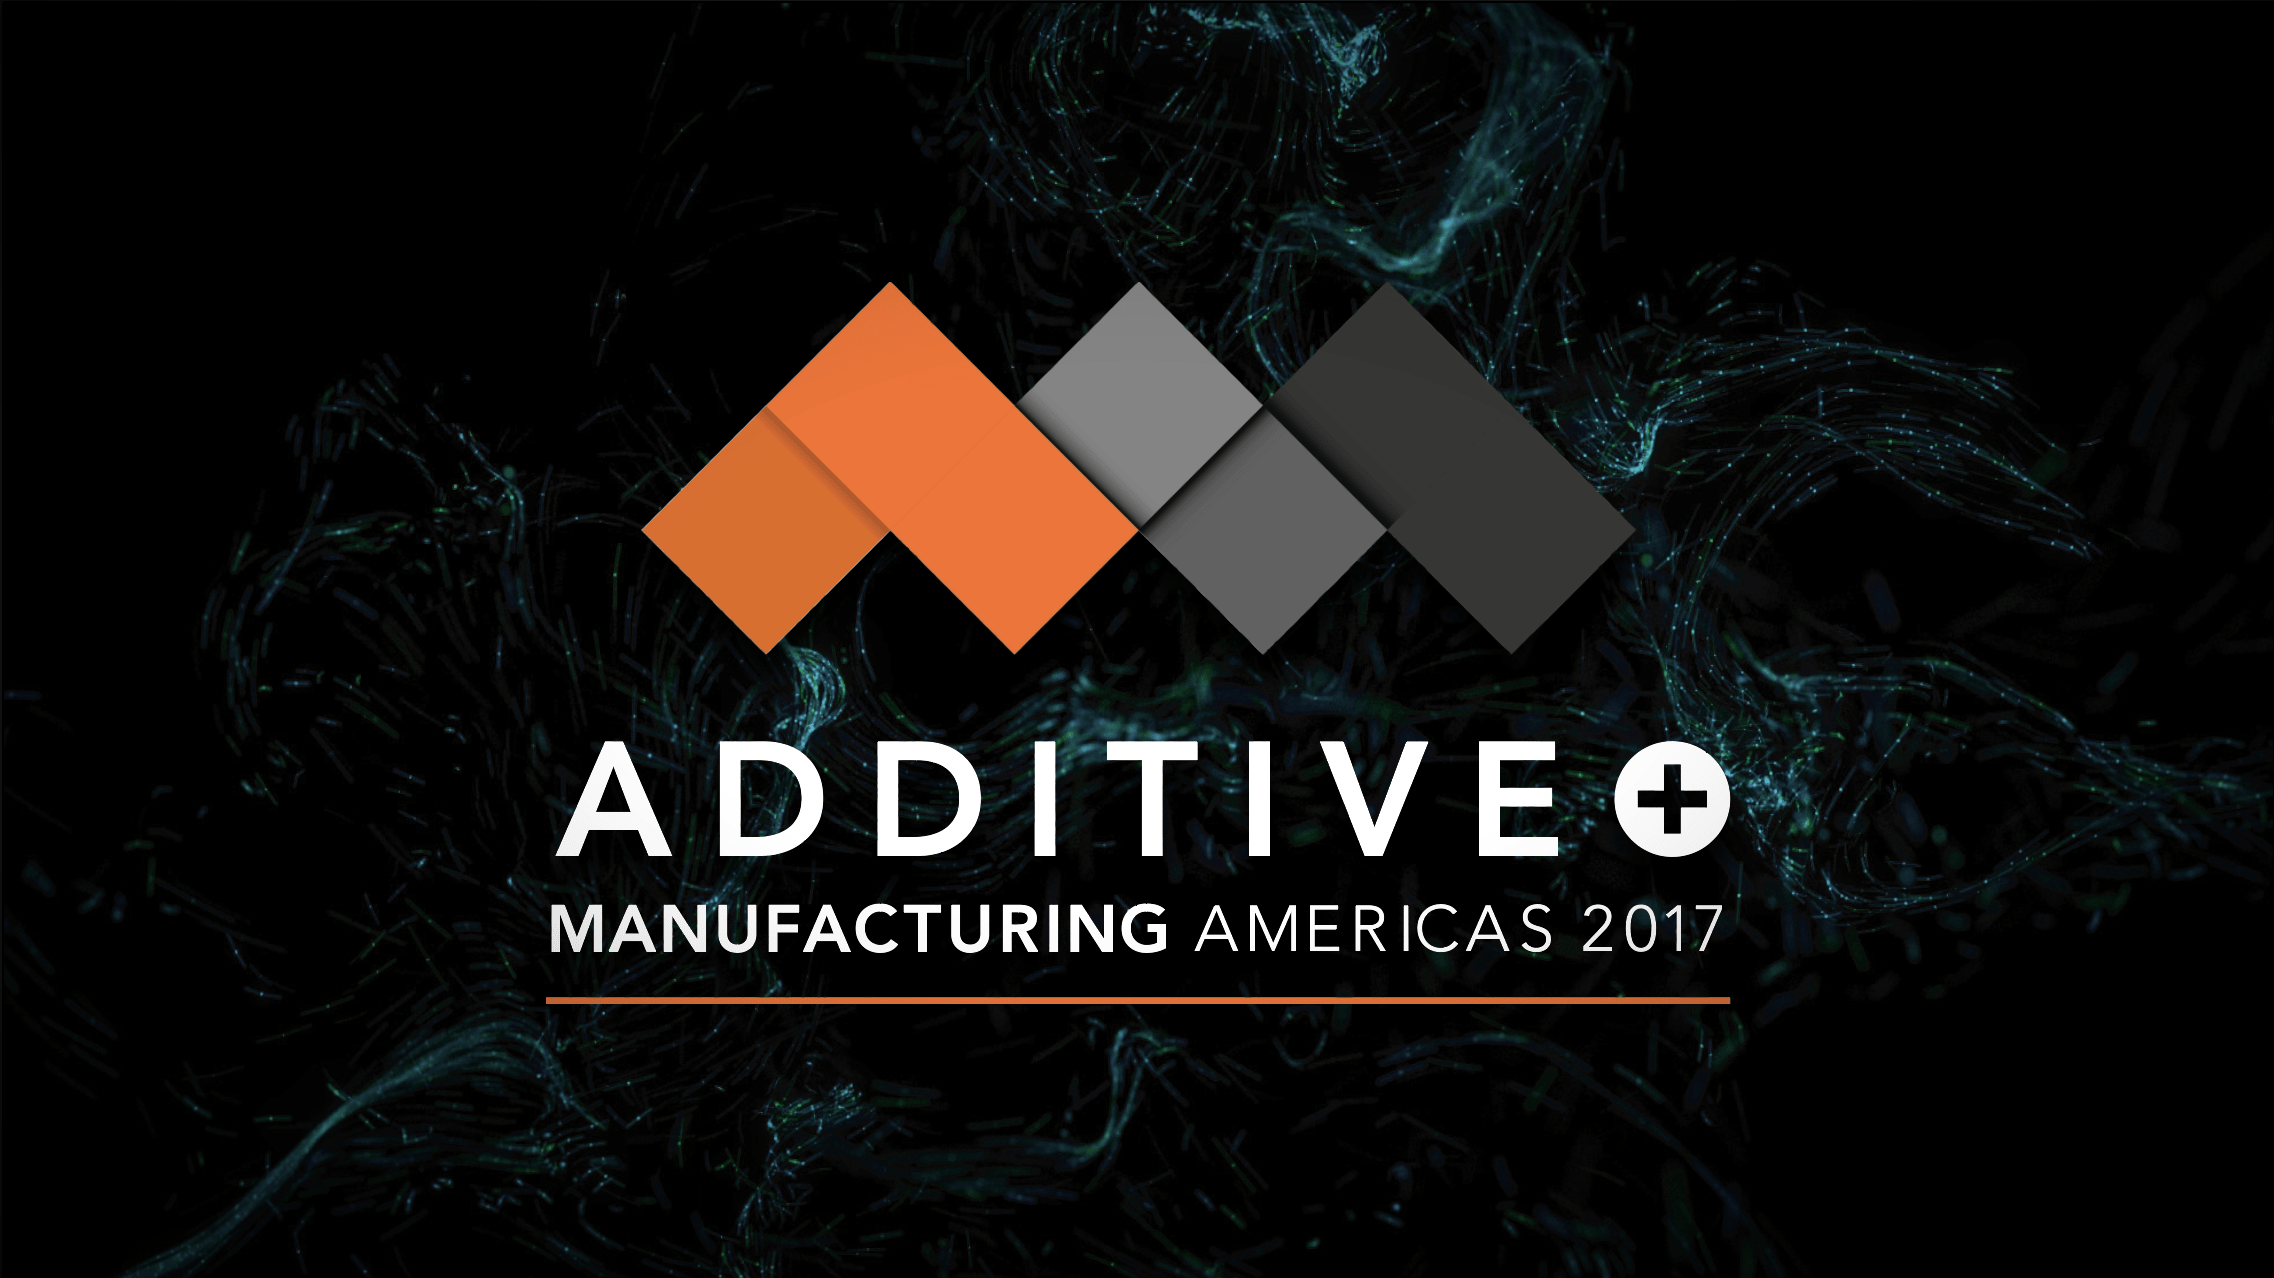 Arrival 3D Attends Additive Manufacturing Americas Conference 2017 Pasadena, CA